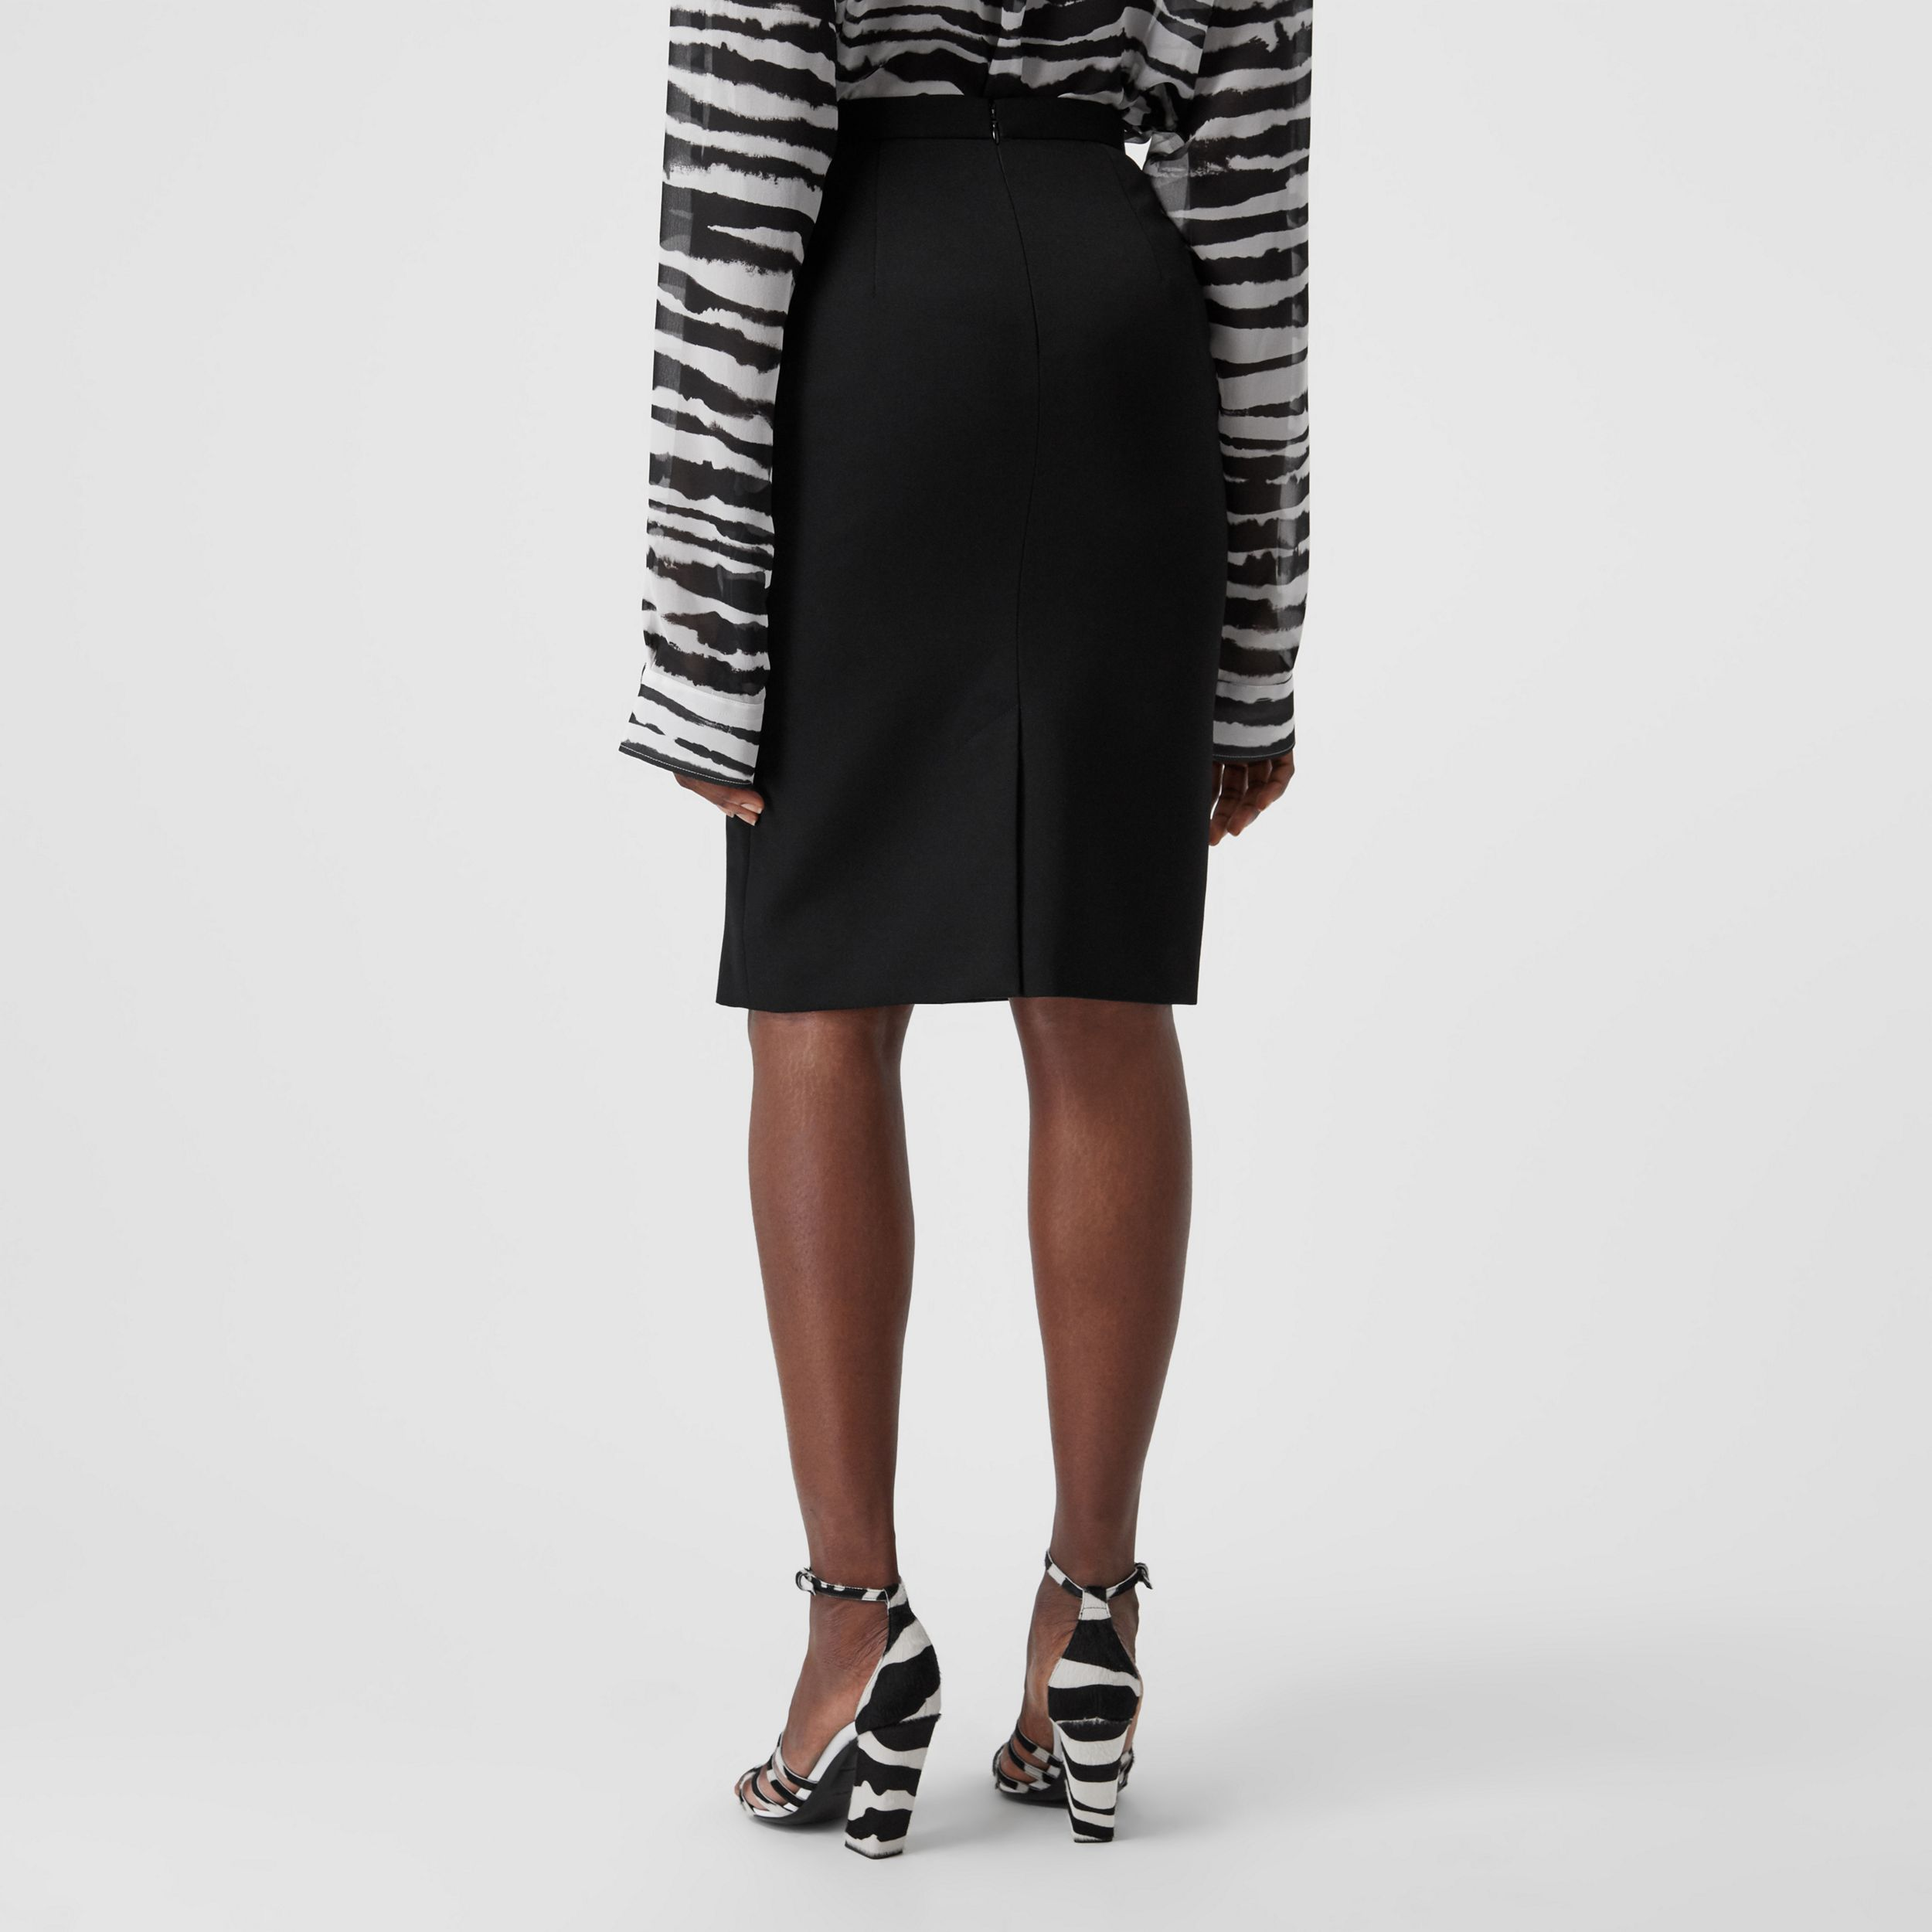 Cotton Jersey Step-through Pencil Skirt in Black - Women | Burberry - 2